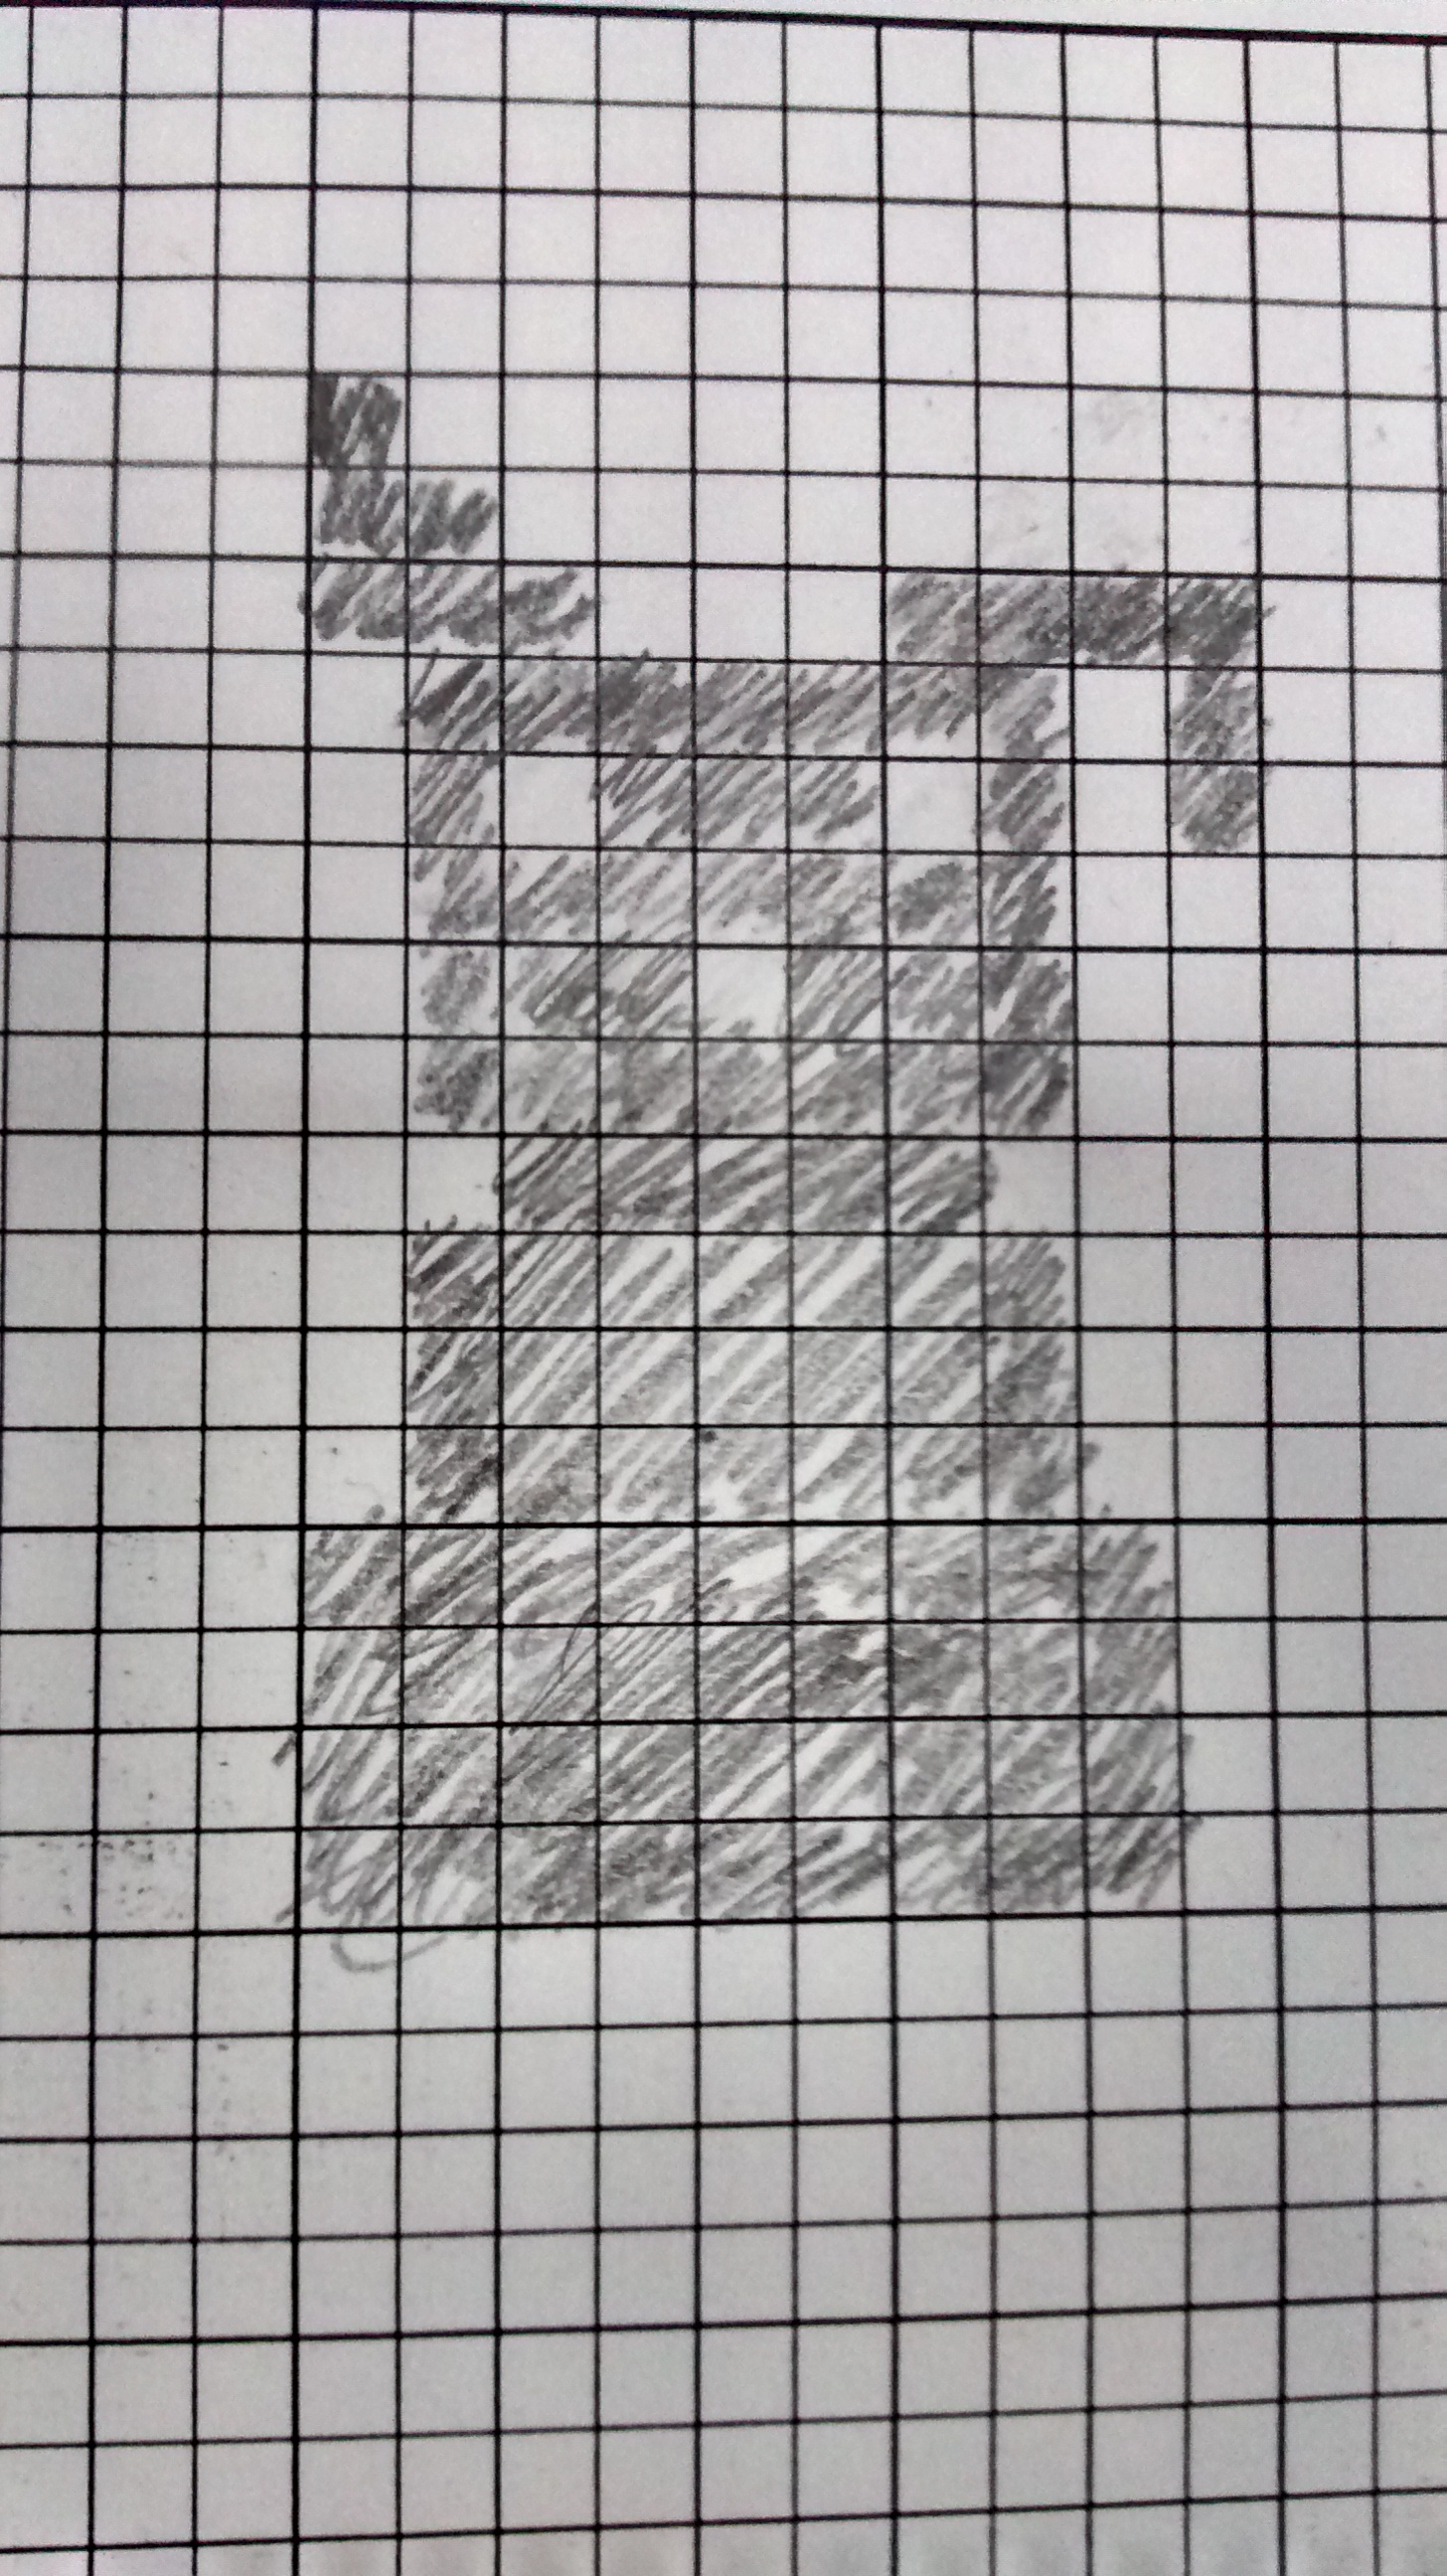 how to make graph paper in photoshop